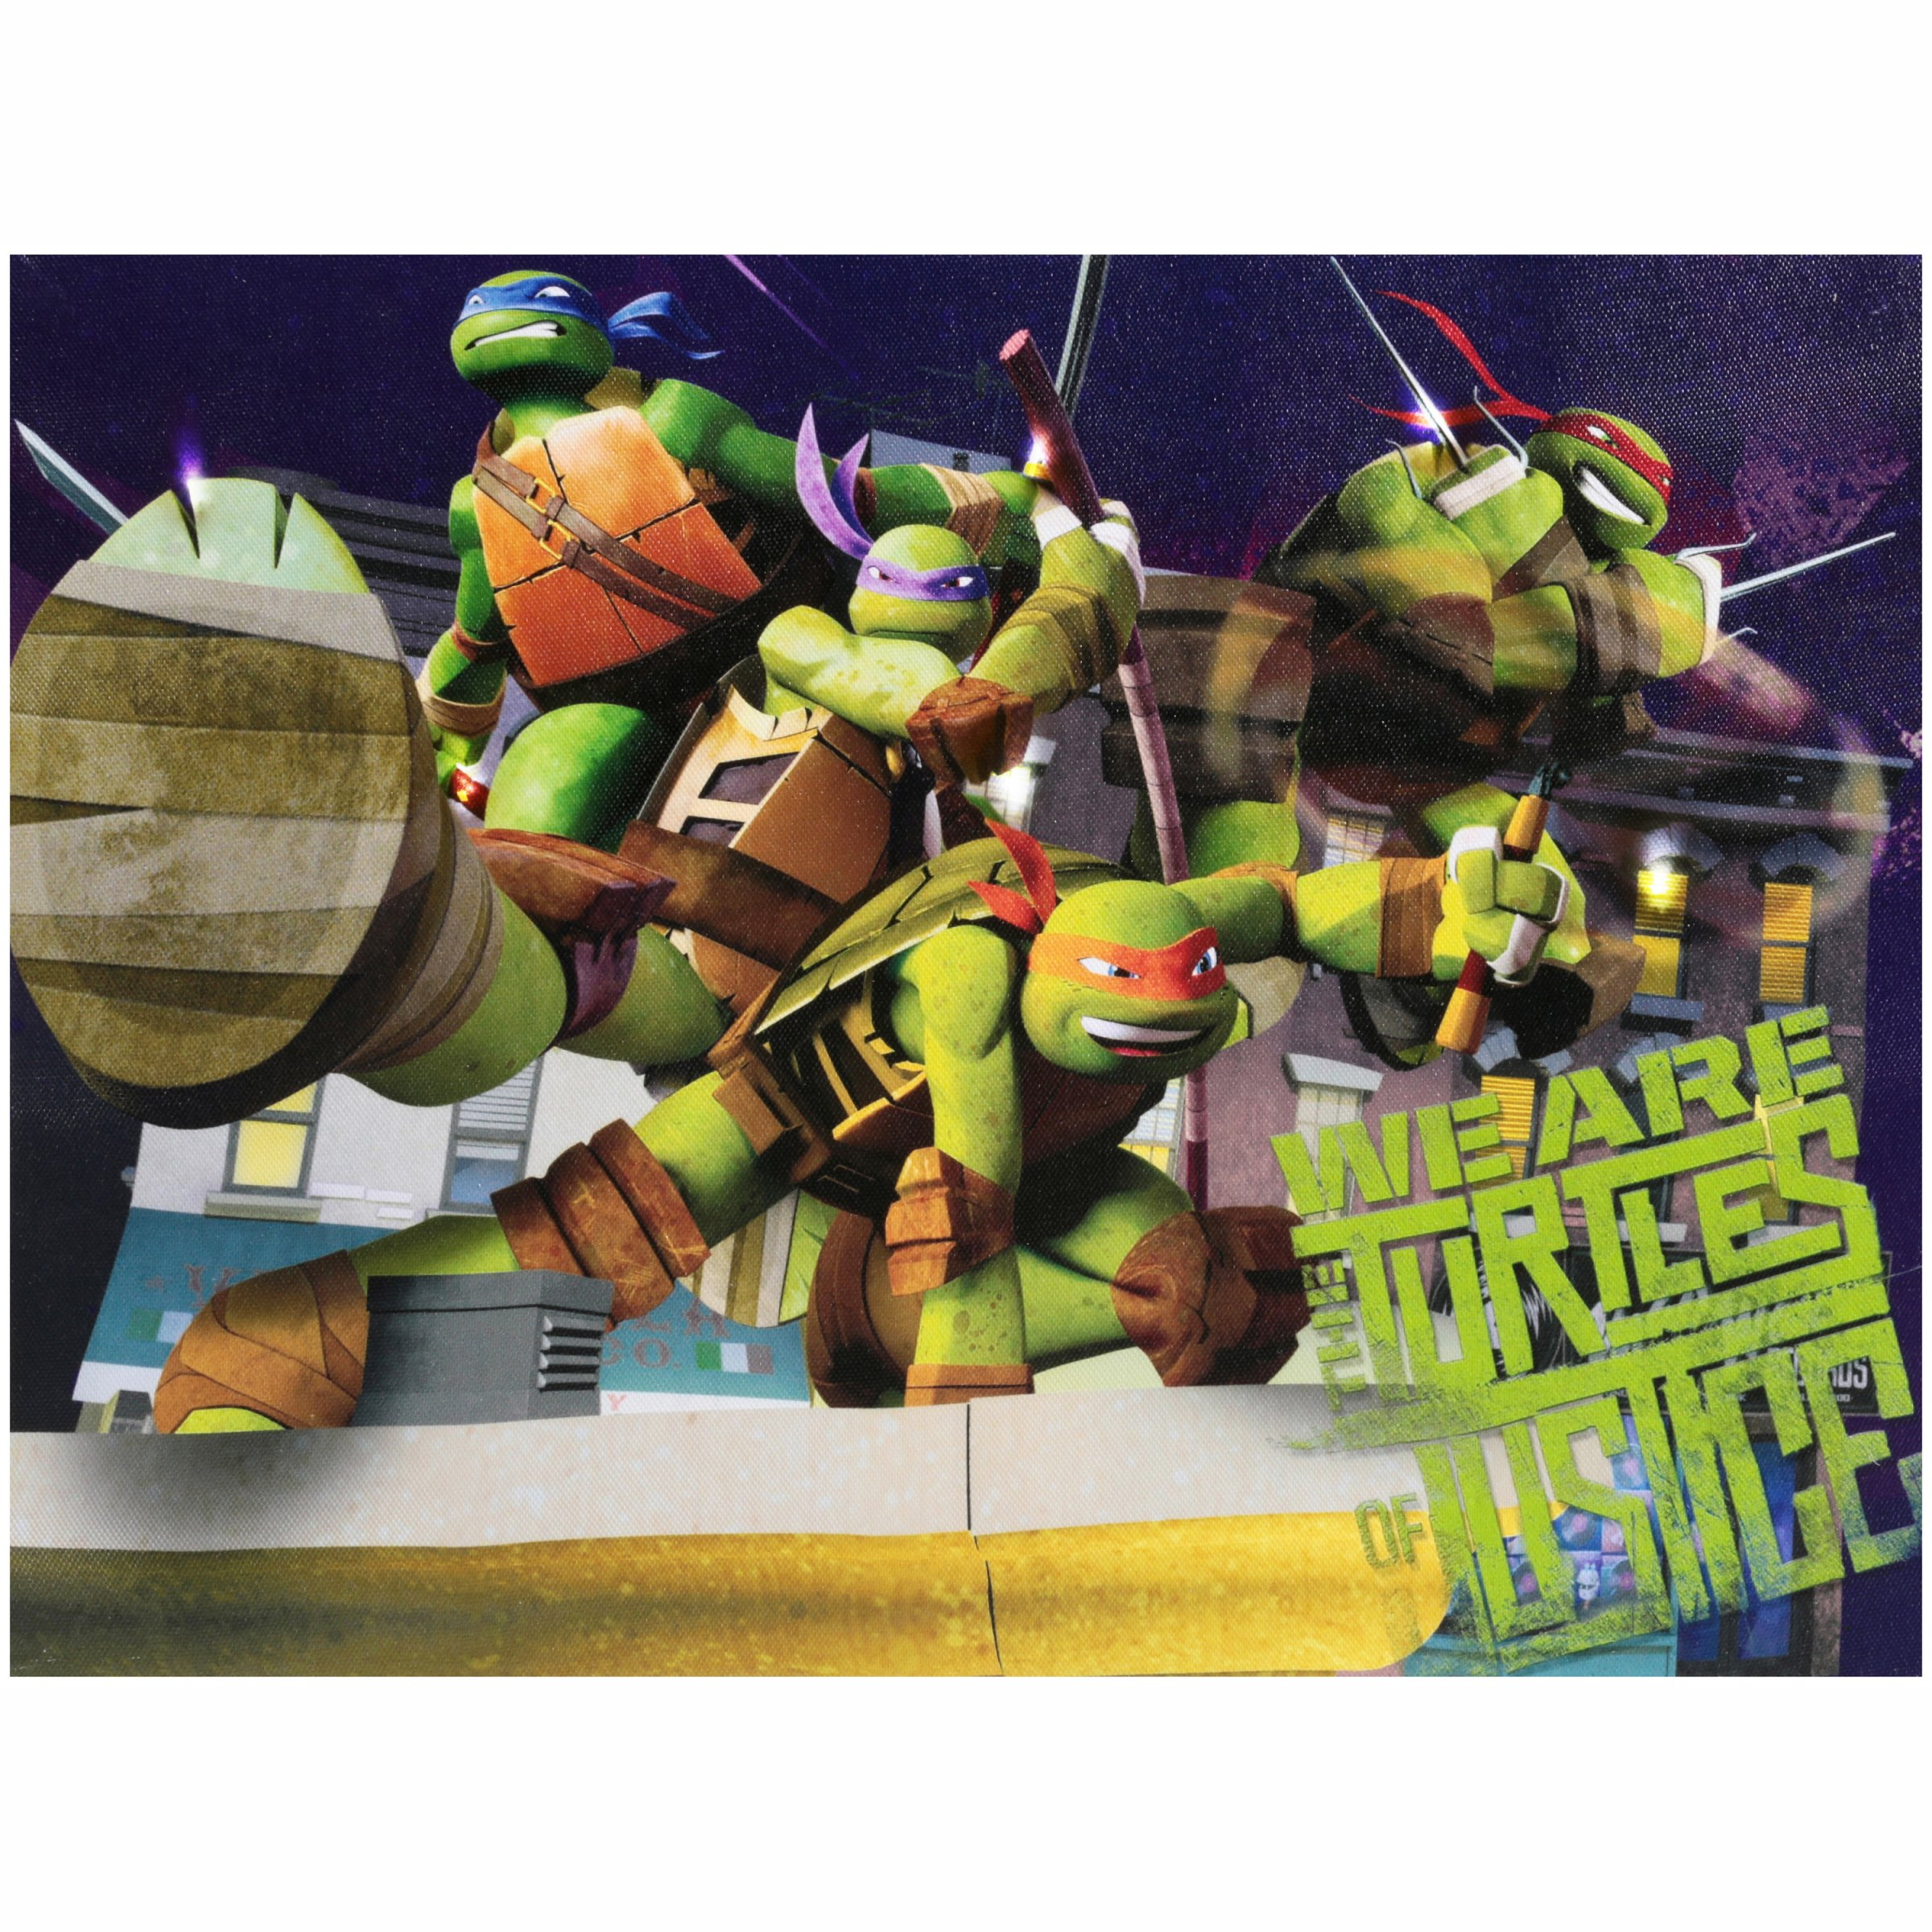 ninja turtles chair power chairs and scooters nickelodeon tmnt bedroom playroom accessories set